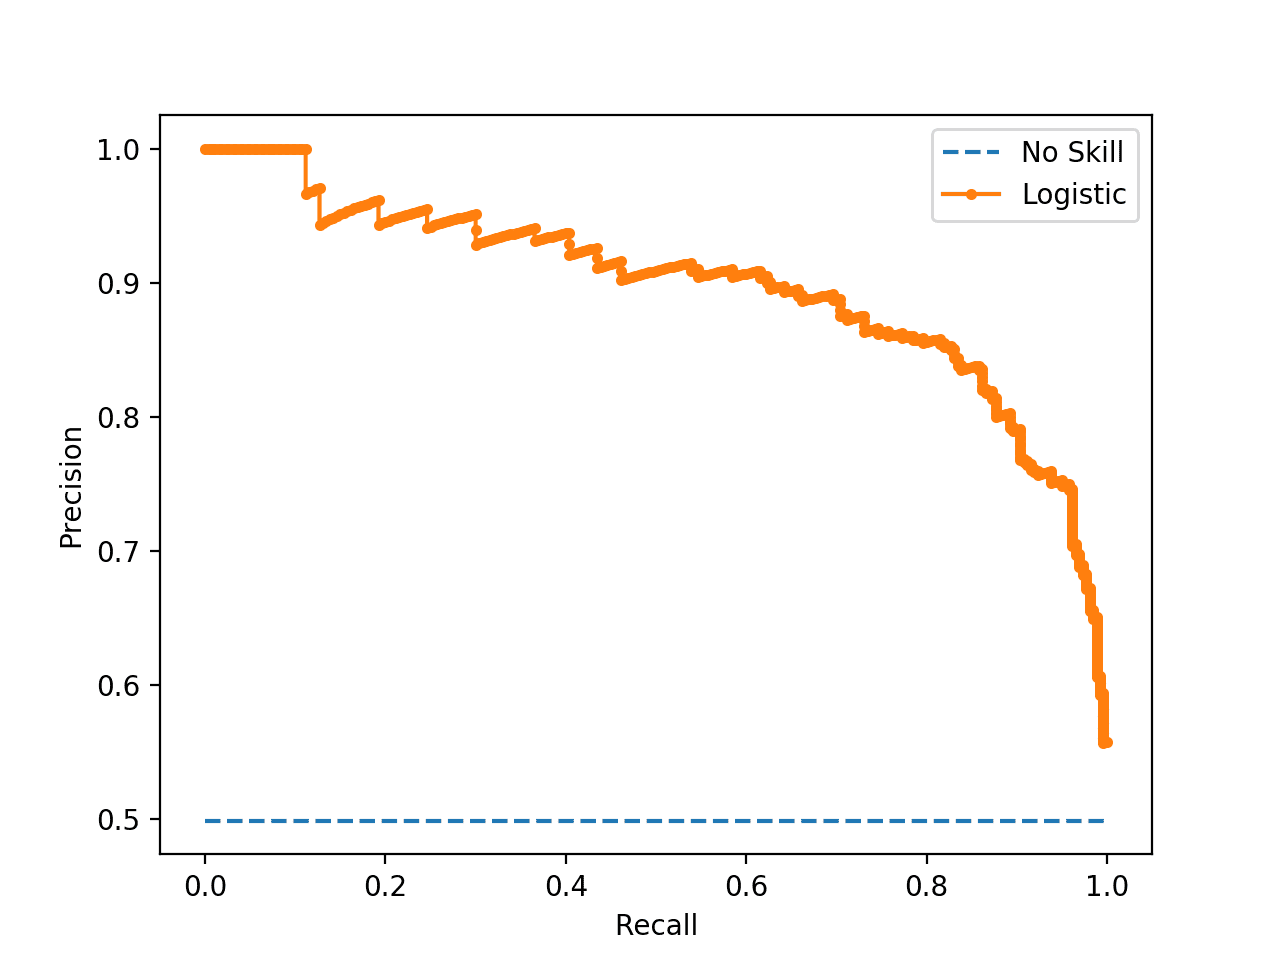 Precision-Recall Curve of a Logistic Regression Model and a No Skill Classifier